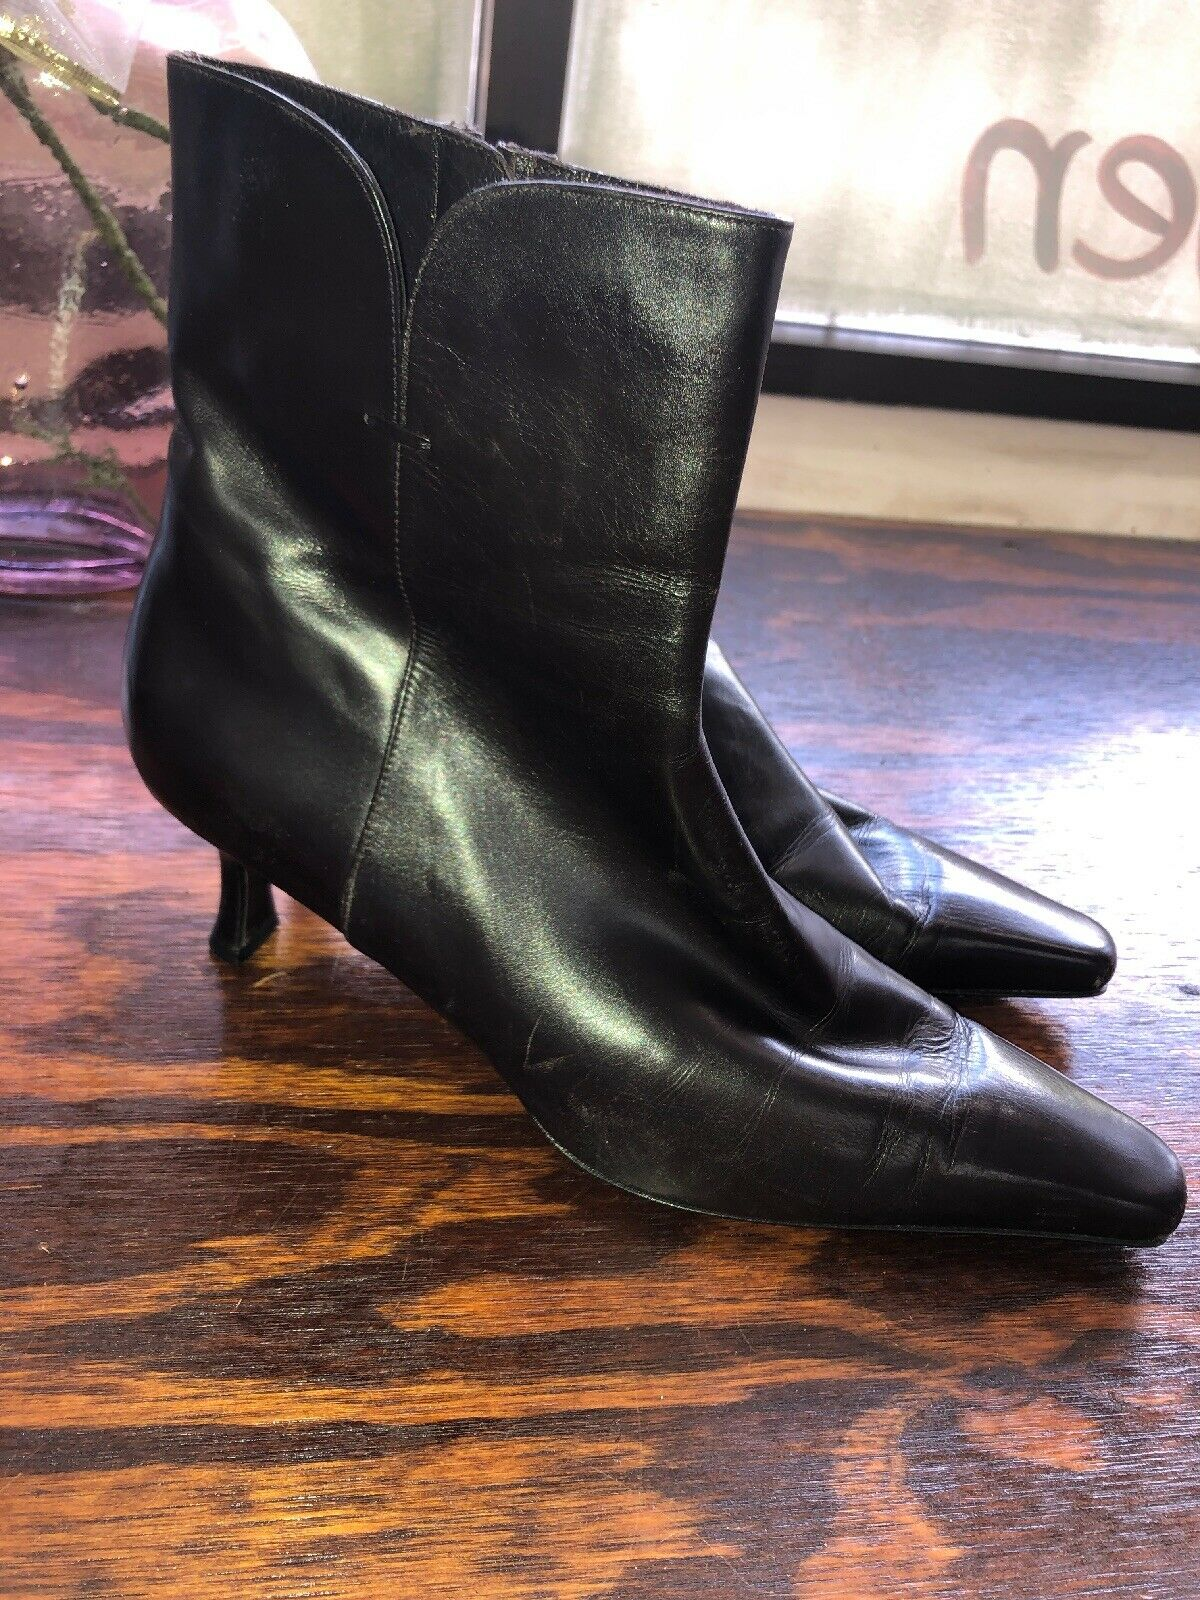 Stuart Weitzman  Ankle Boots Booties Brown Leather Sz 9